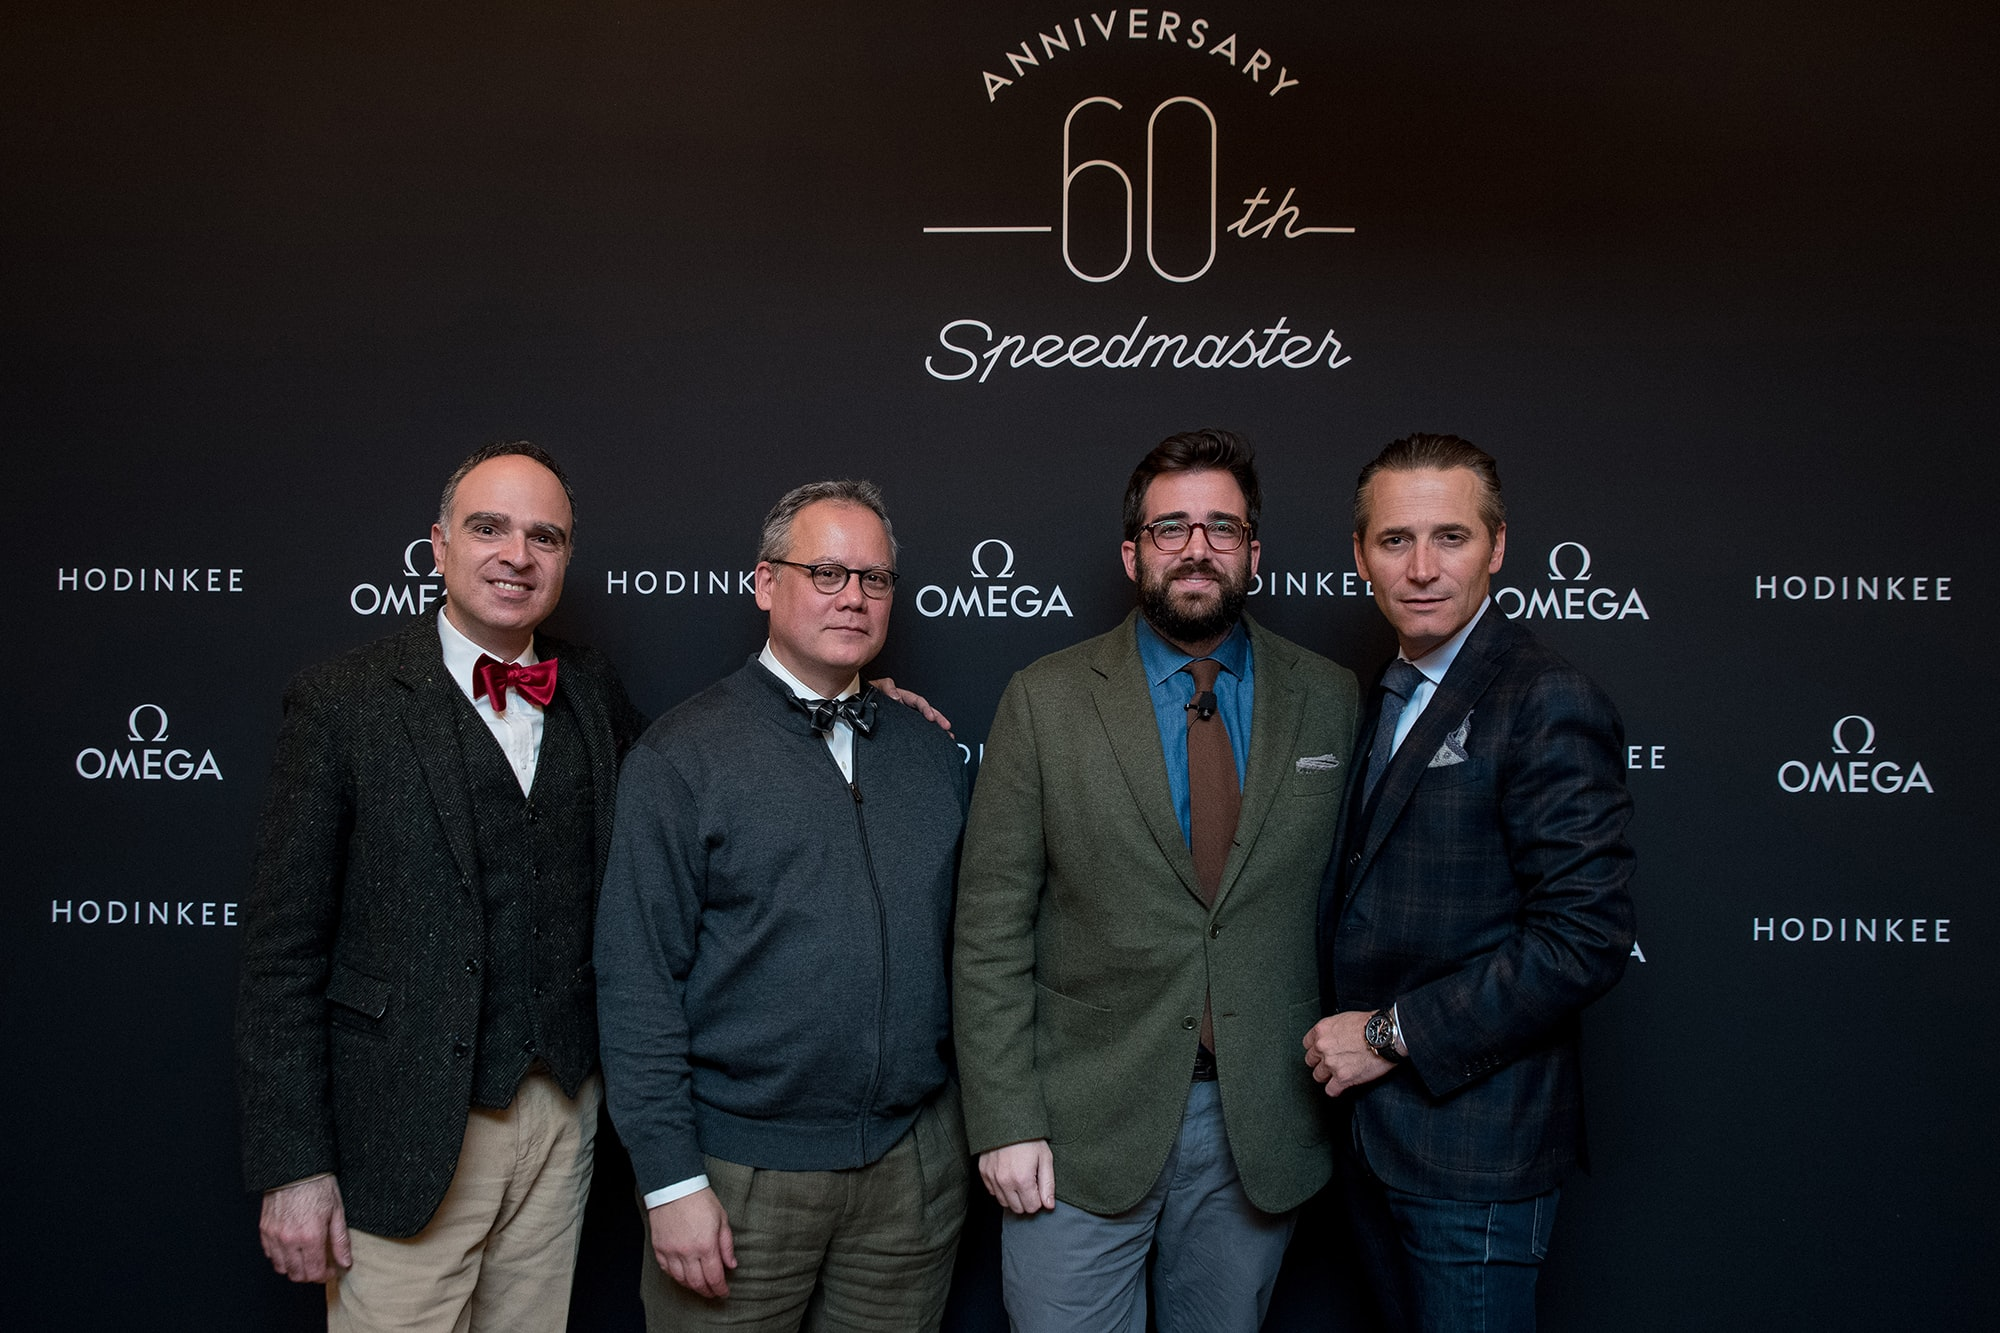 Photo Report: HODINKEE And Omega Celebrate The 60th Anniversary Of The Speedmaster Photo Report: HODINKEE And Omega Celebrate The 60th Anniversary Of The Speedmaster  20170221 OmegaSpeedmaster60th 105